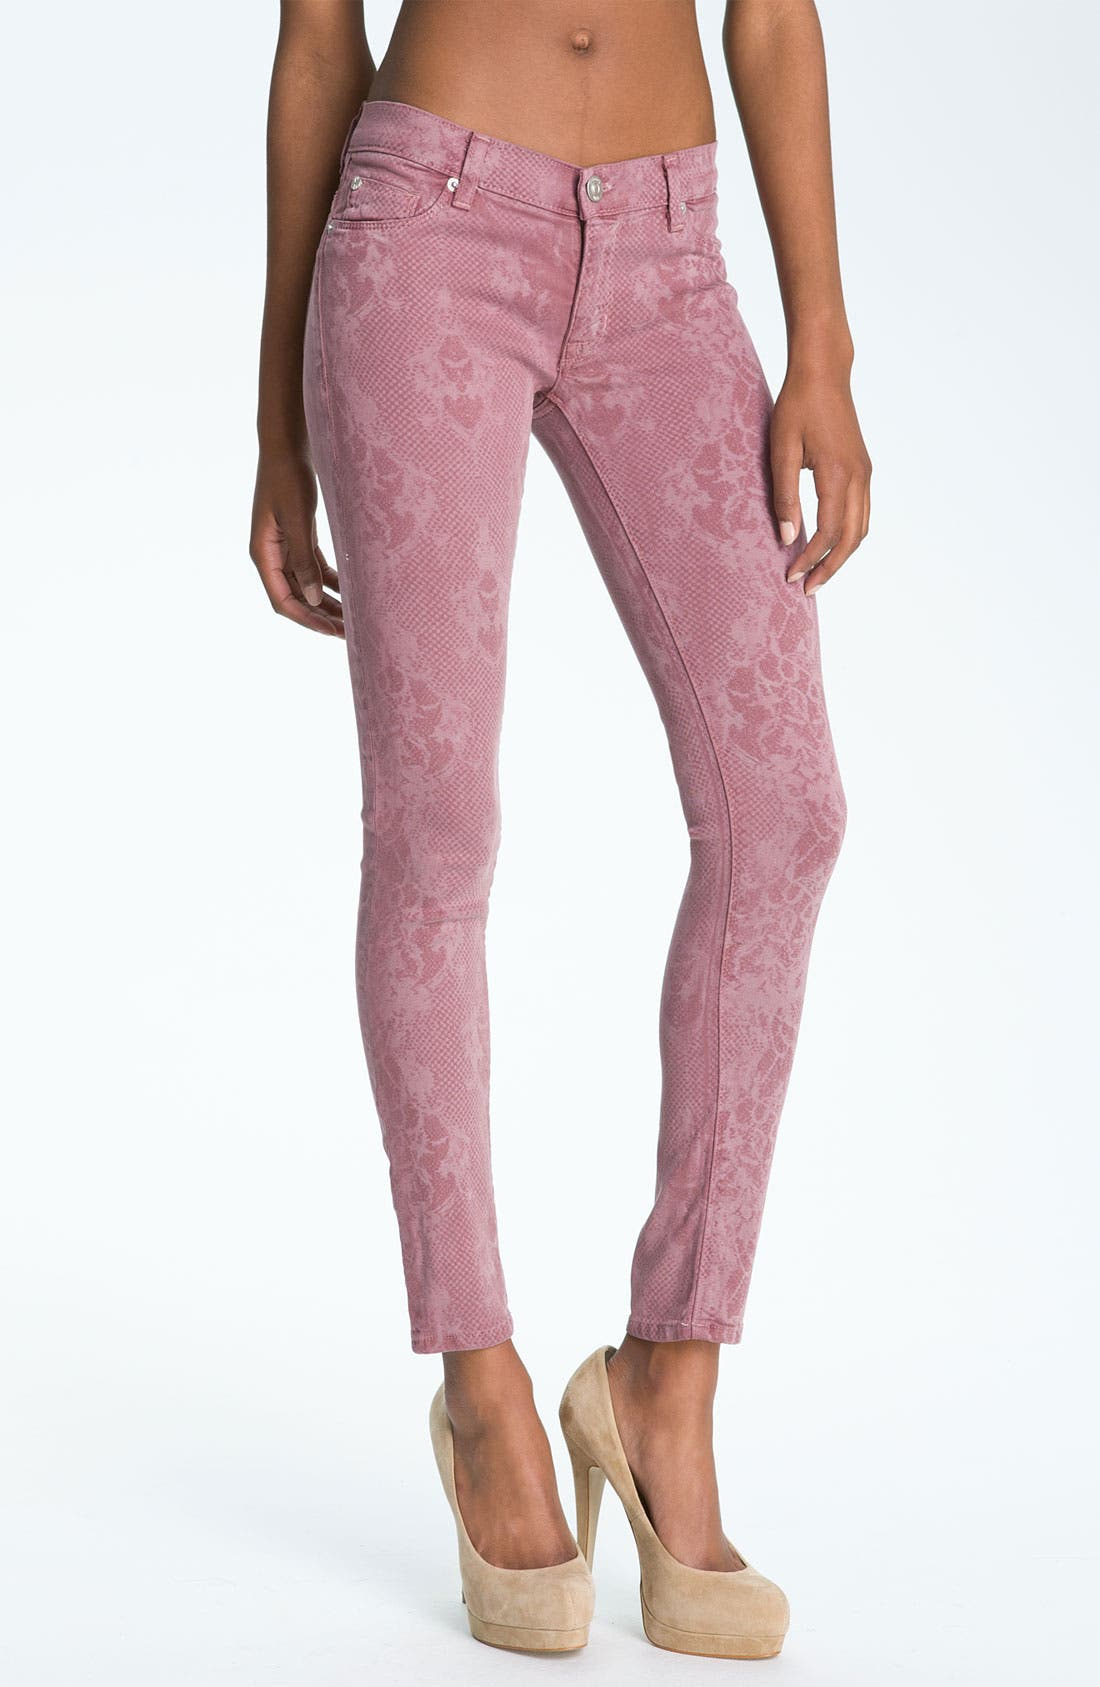 Alternate Image 1 Selected - Hudson Jeans 'Nico' Mid Rise Skinny Stretch Jeans (Blush Lace)